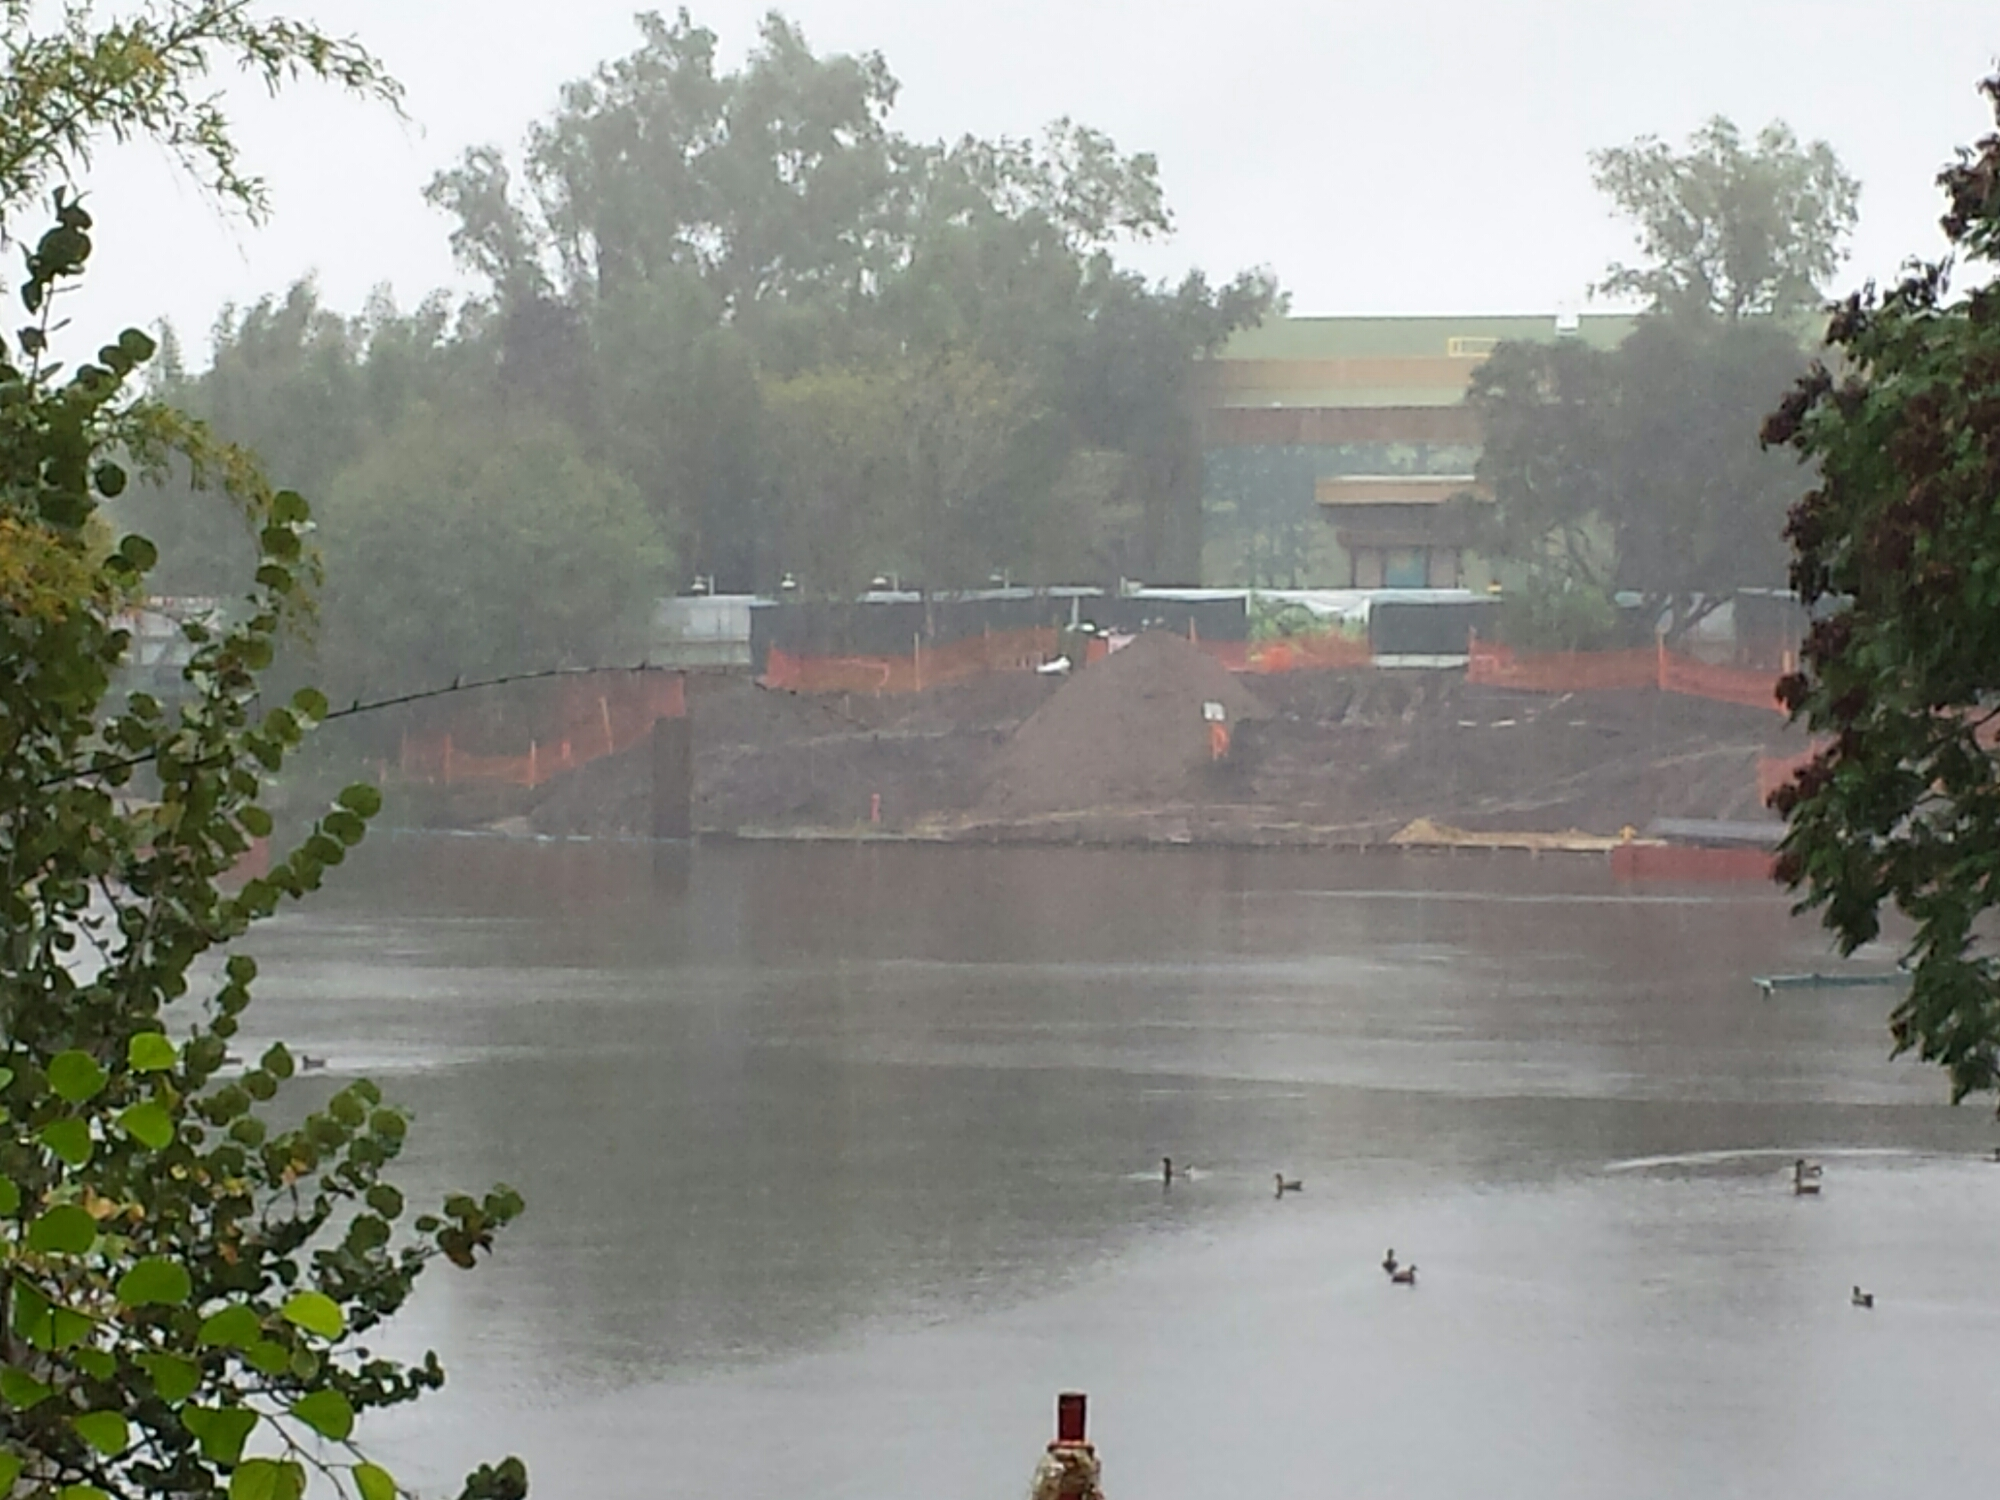 A look across a rainy lagoon at the prep work underway for the new viewing area